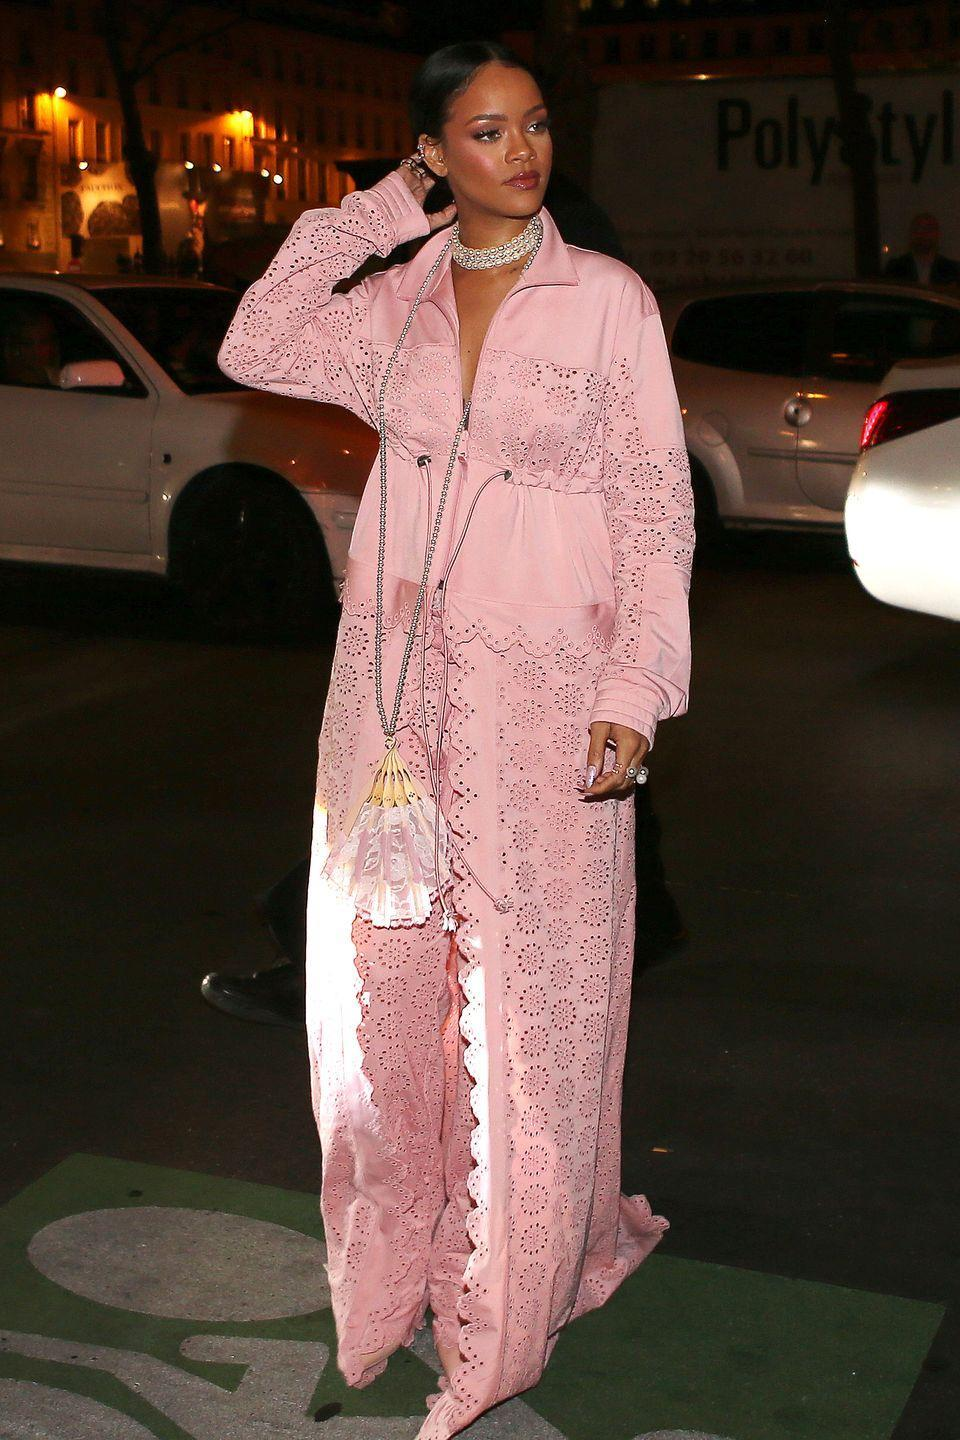 <p>In head-to-toe Fenty x Puma by Rihanna after her fashion show in Paris.</p>